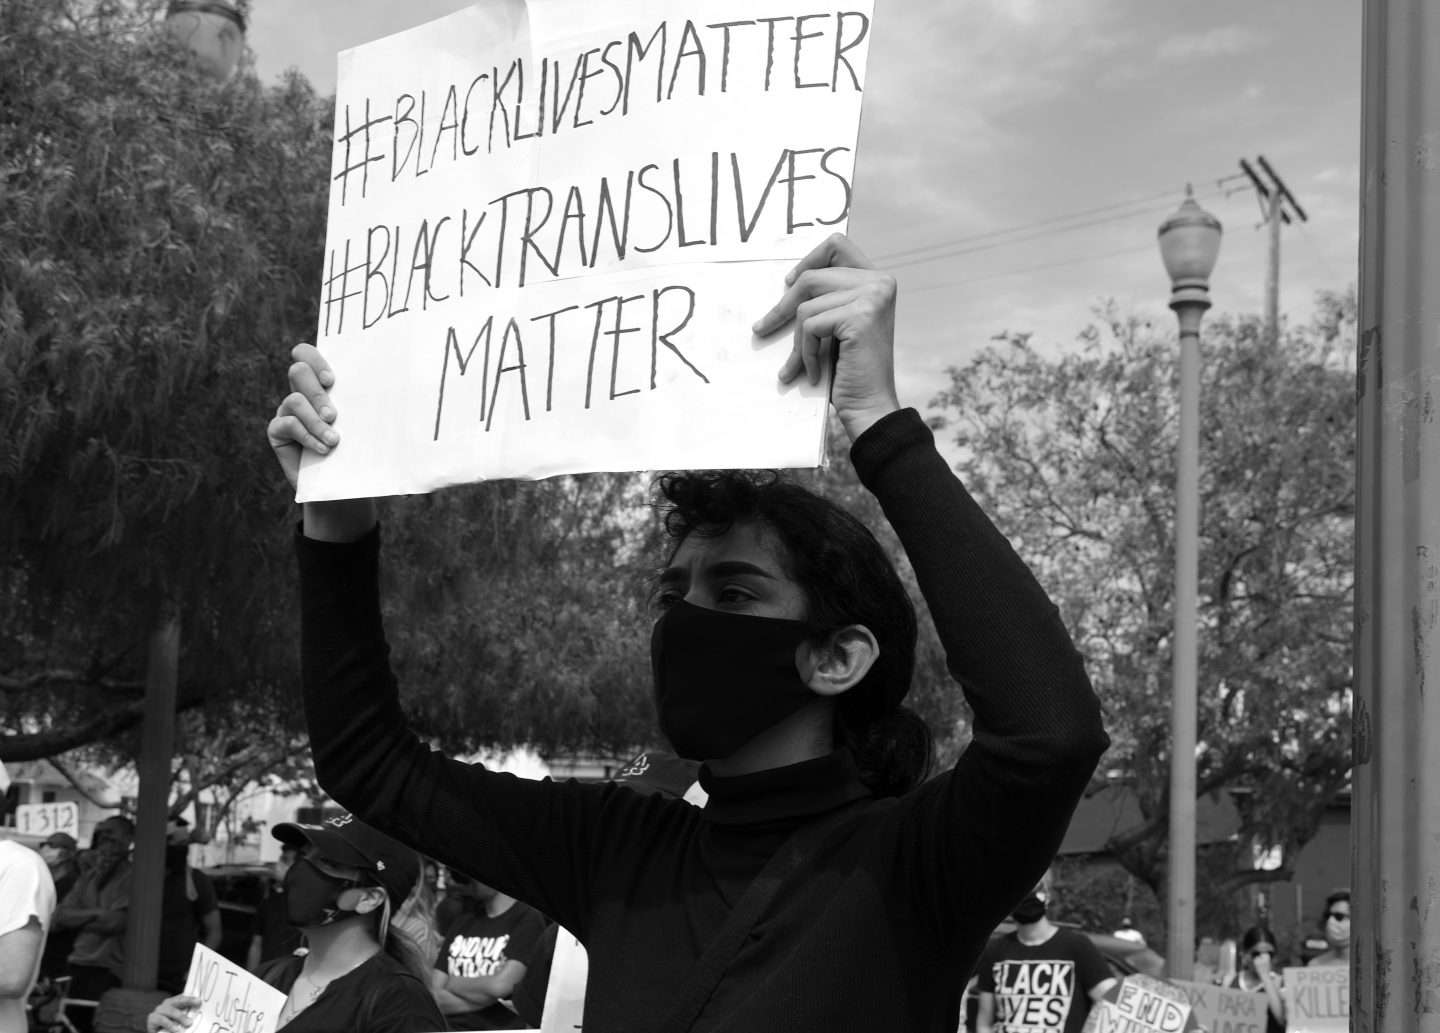 Image from the Black Lives Matter Protest